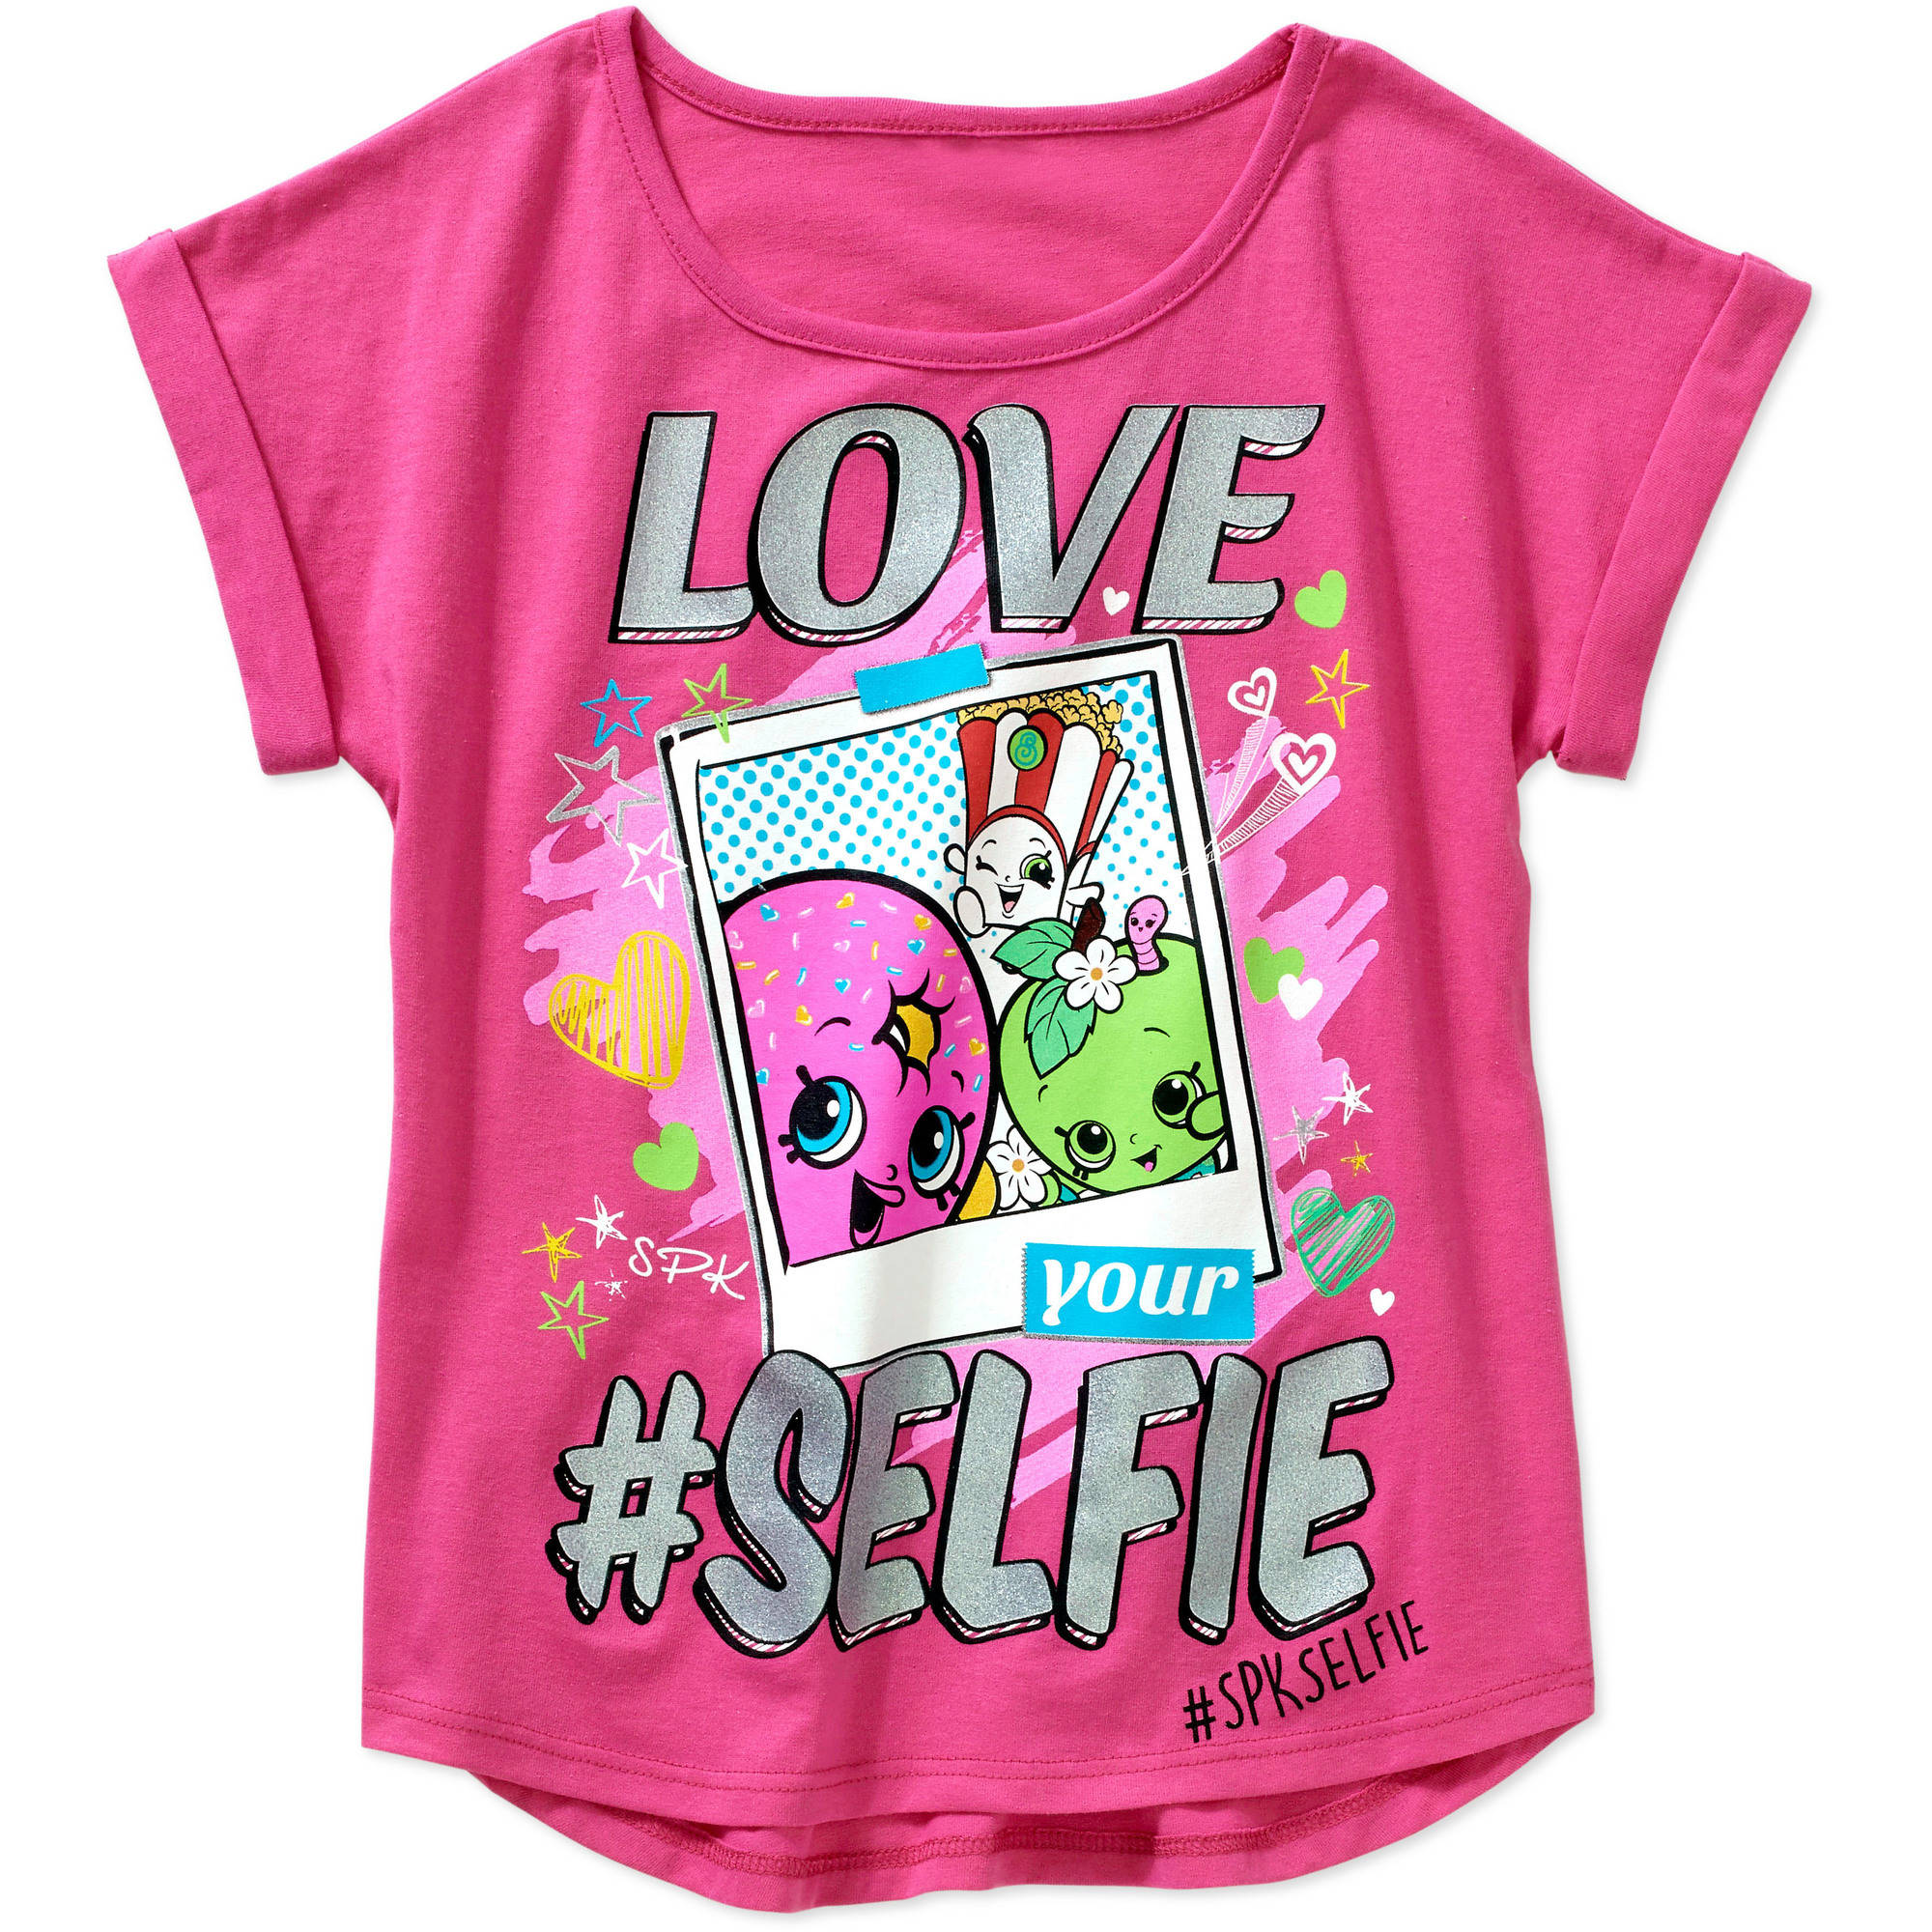 Shopkins Girls' Love Selfie Short Sleeve Crew Neck Graphic Tee